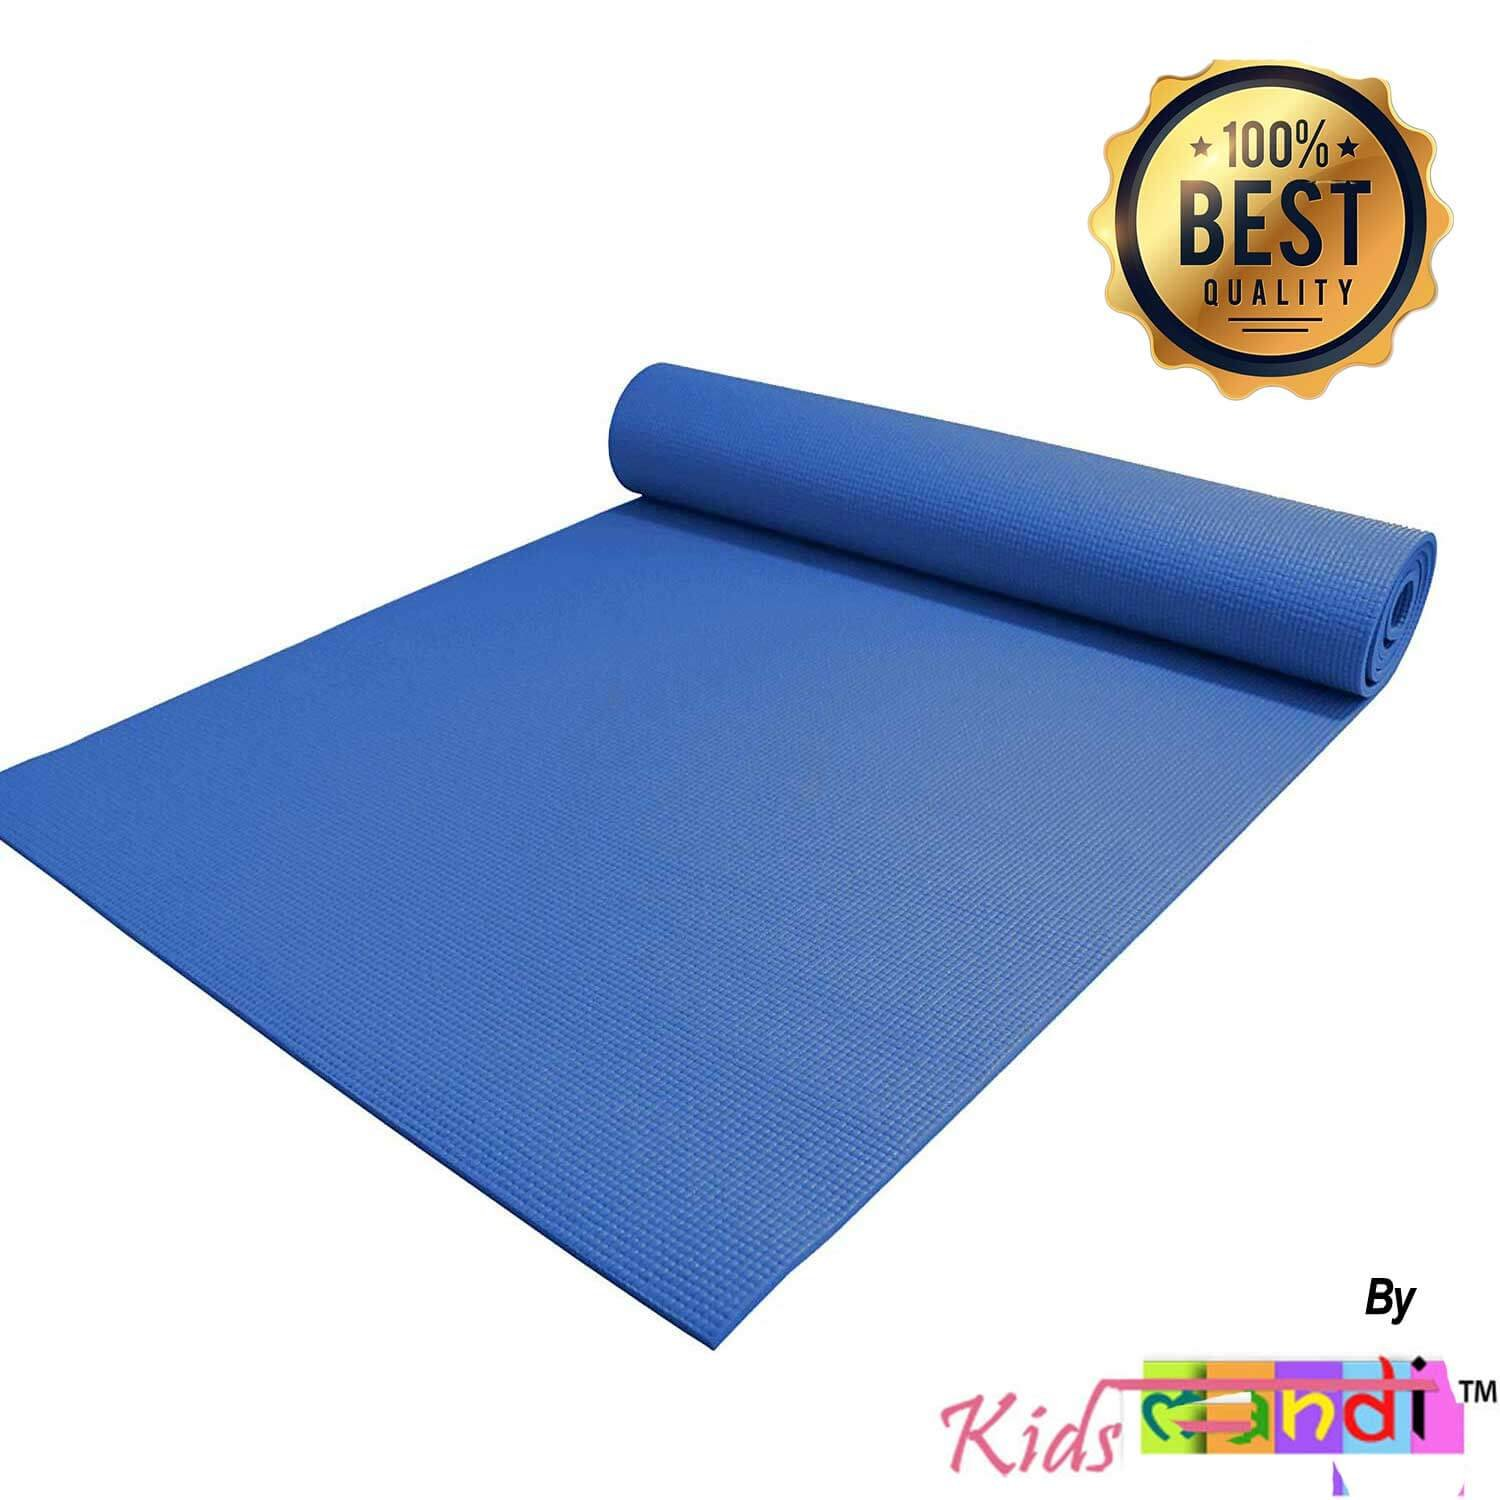 pu antislip yoga laser engraving customizable productimage china rknmbfoeadks best mat polyeuthane the pattern mats